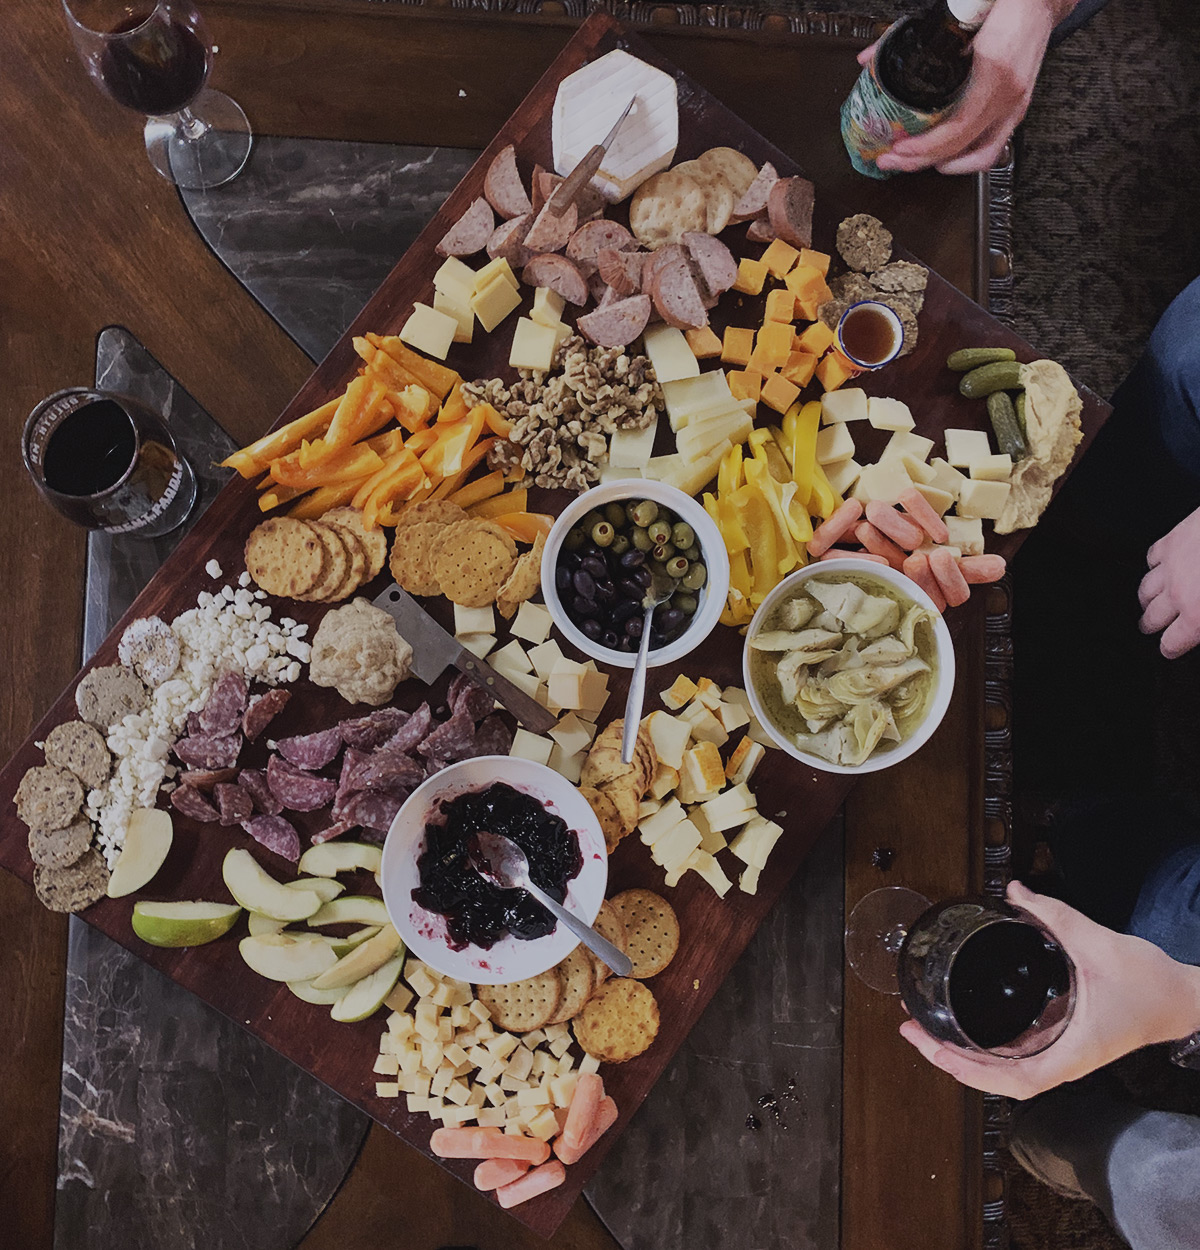 Overhead shot of a scrumptious charcuterie board with drinks in hand.